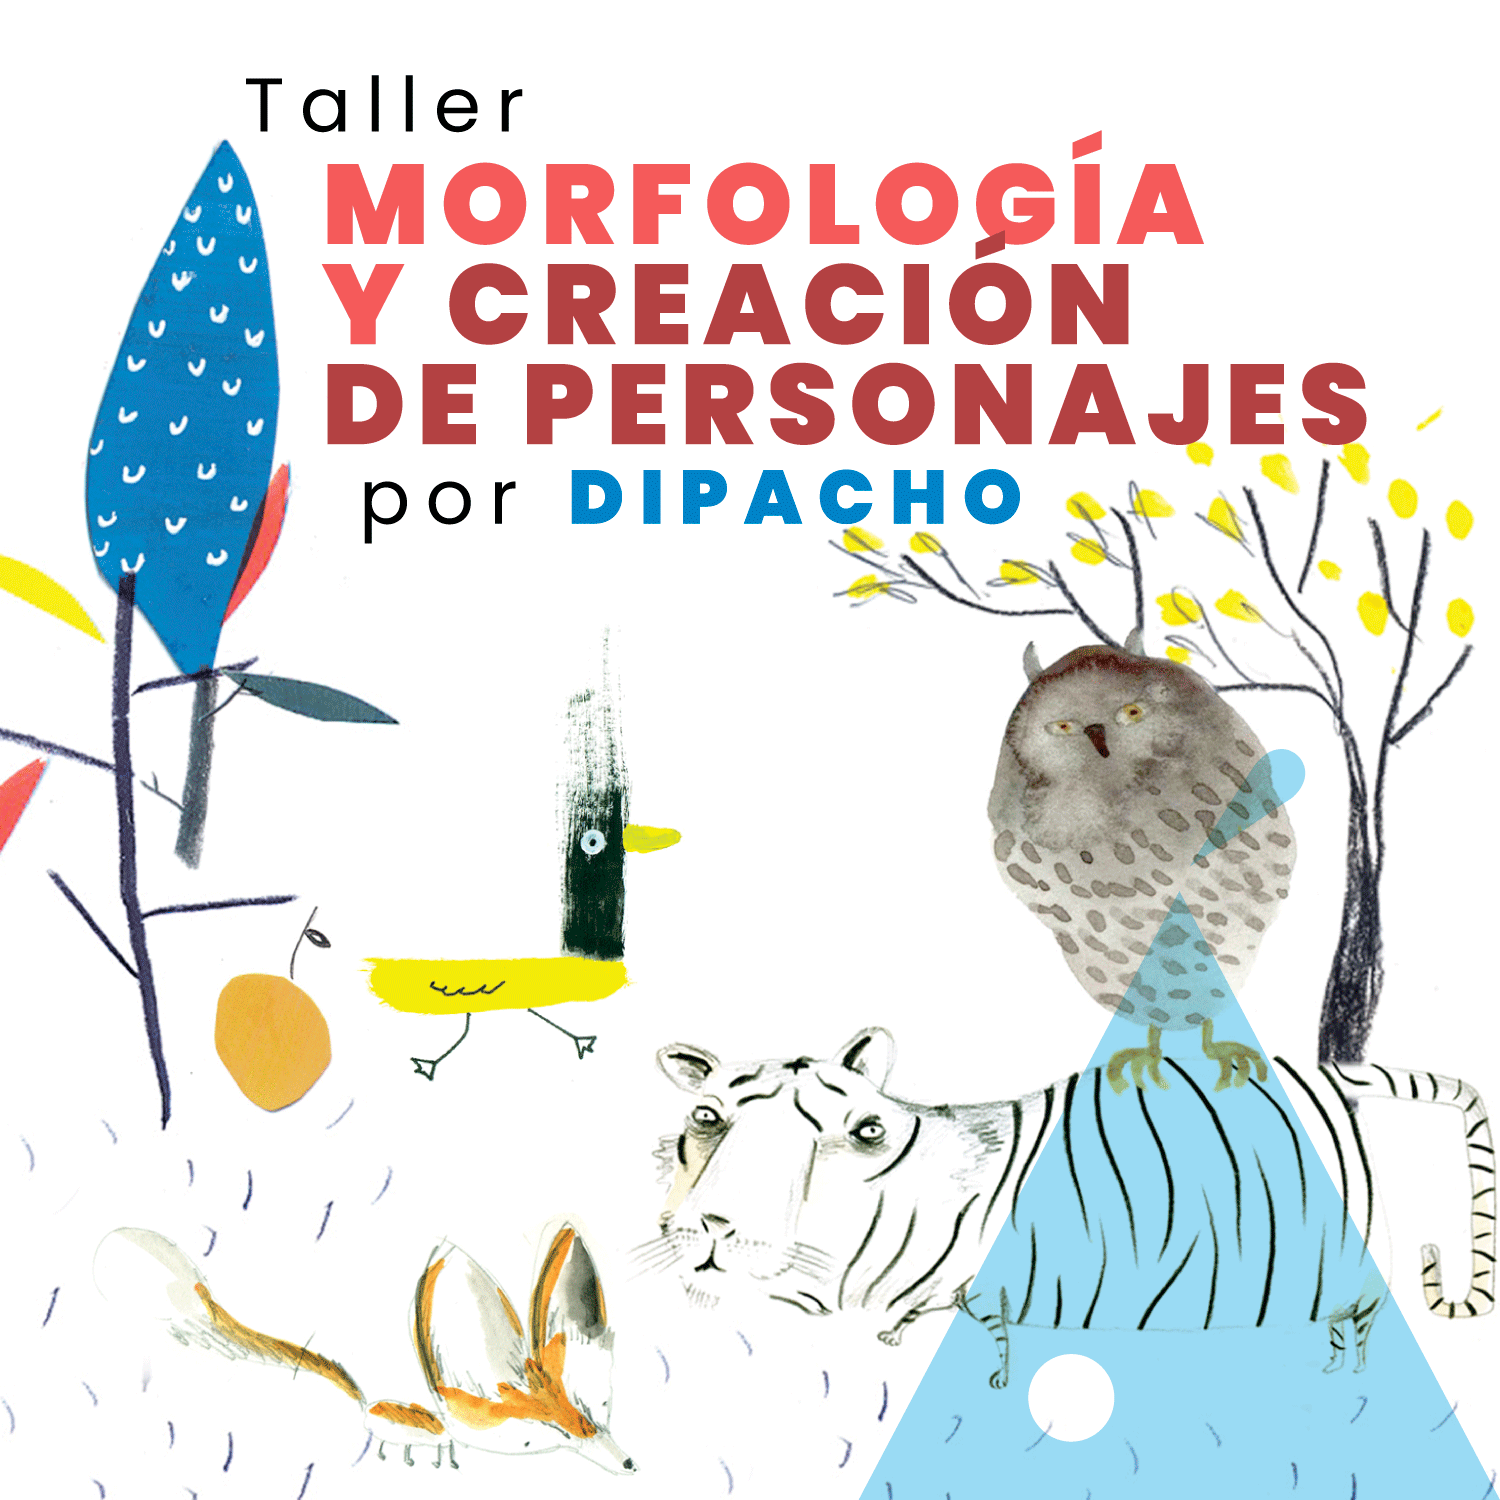 Taller-PERSONAJES-Dipacho-1.png